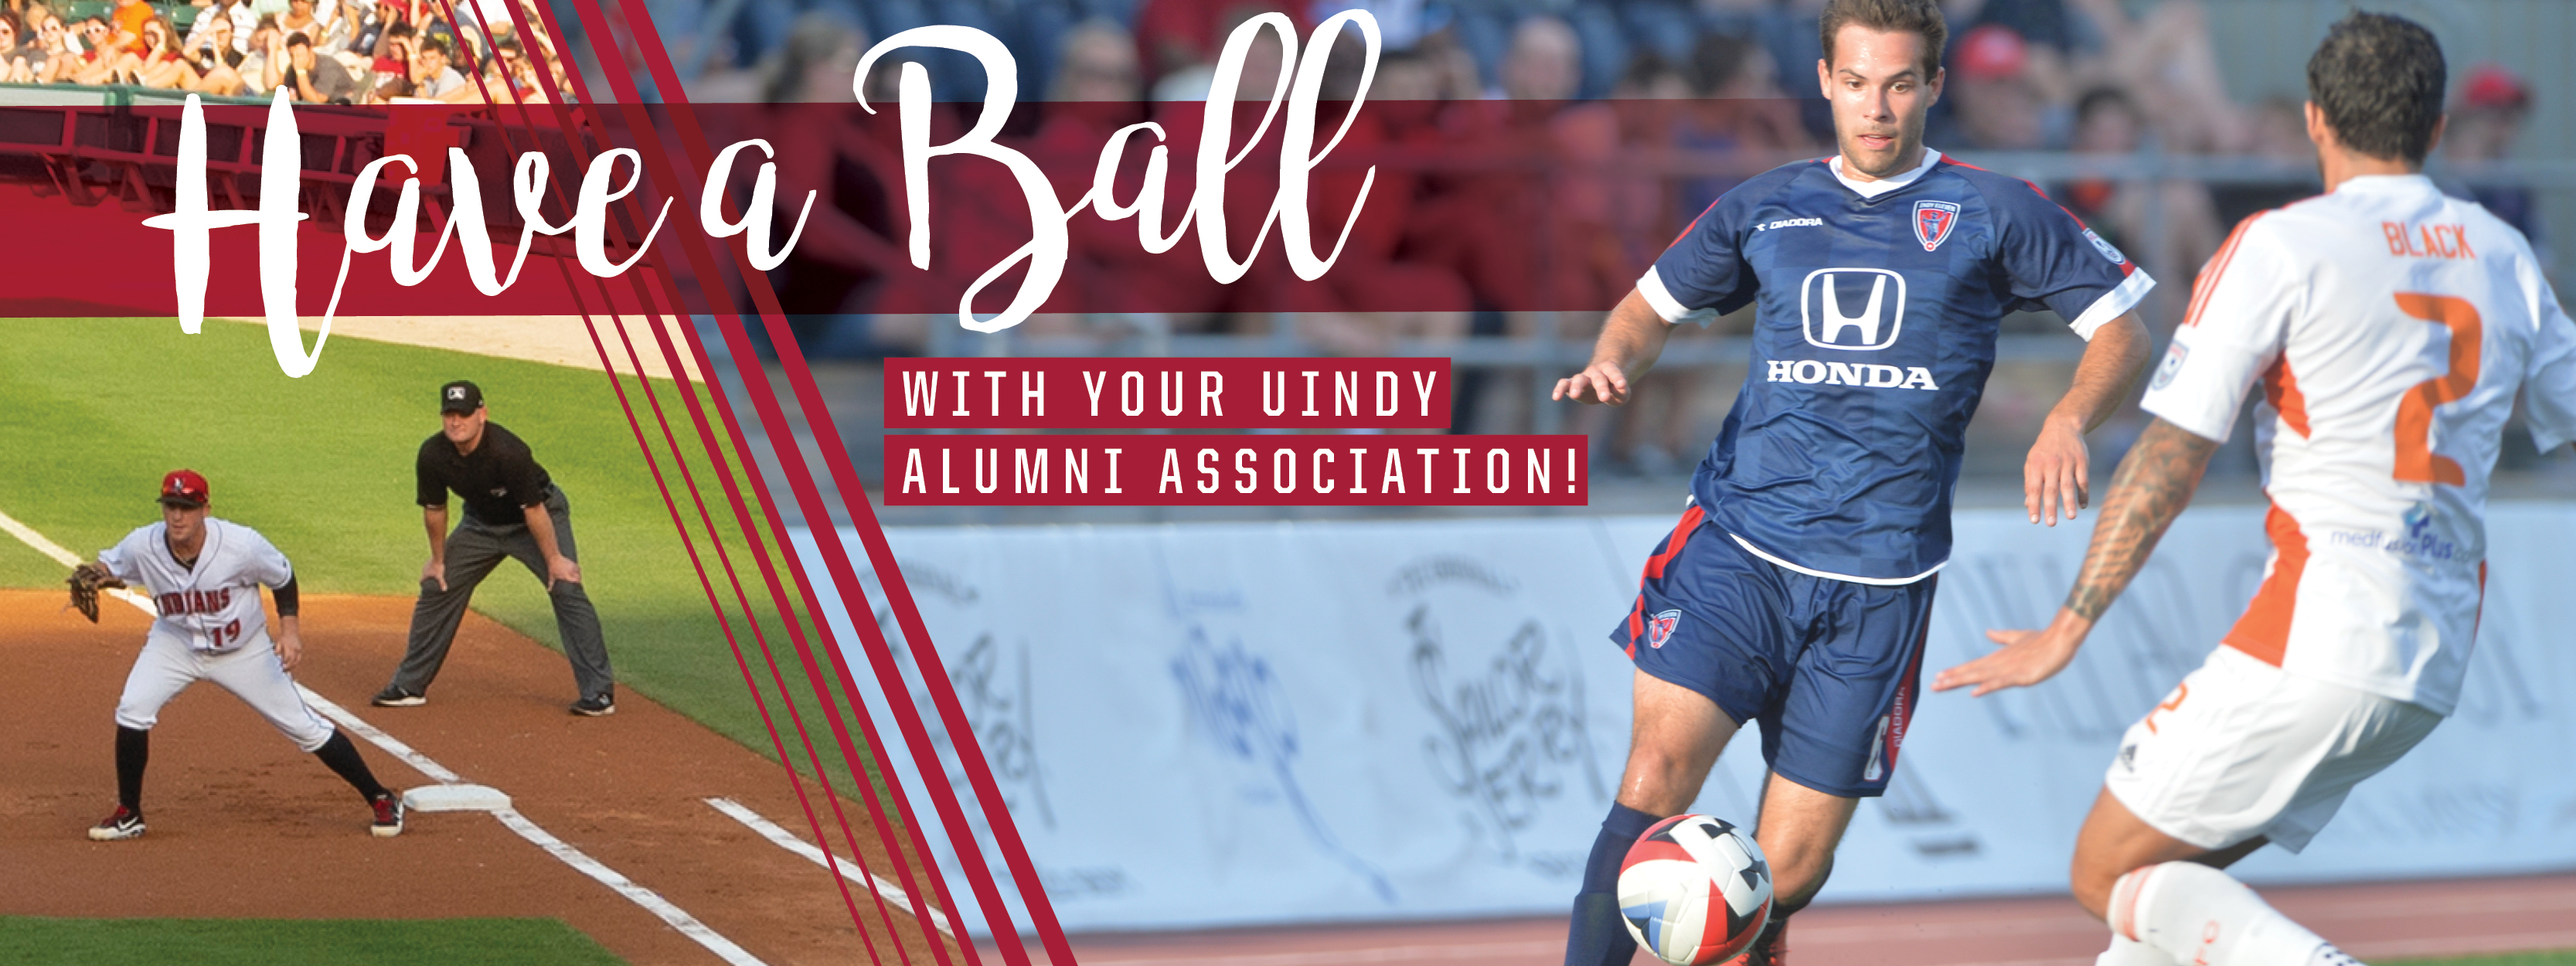 Have a Ball with Your UIndy Alumni Association